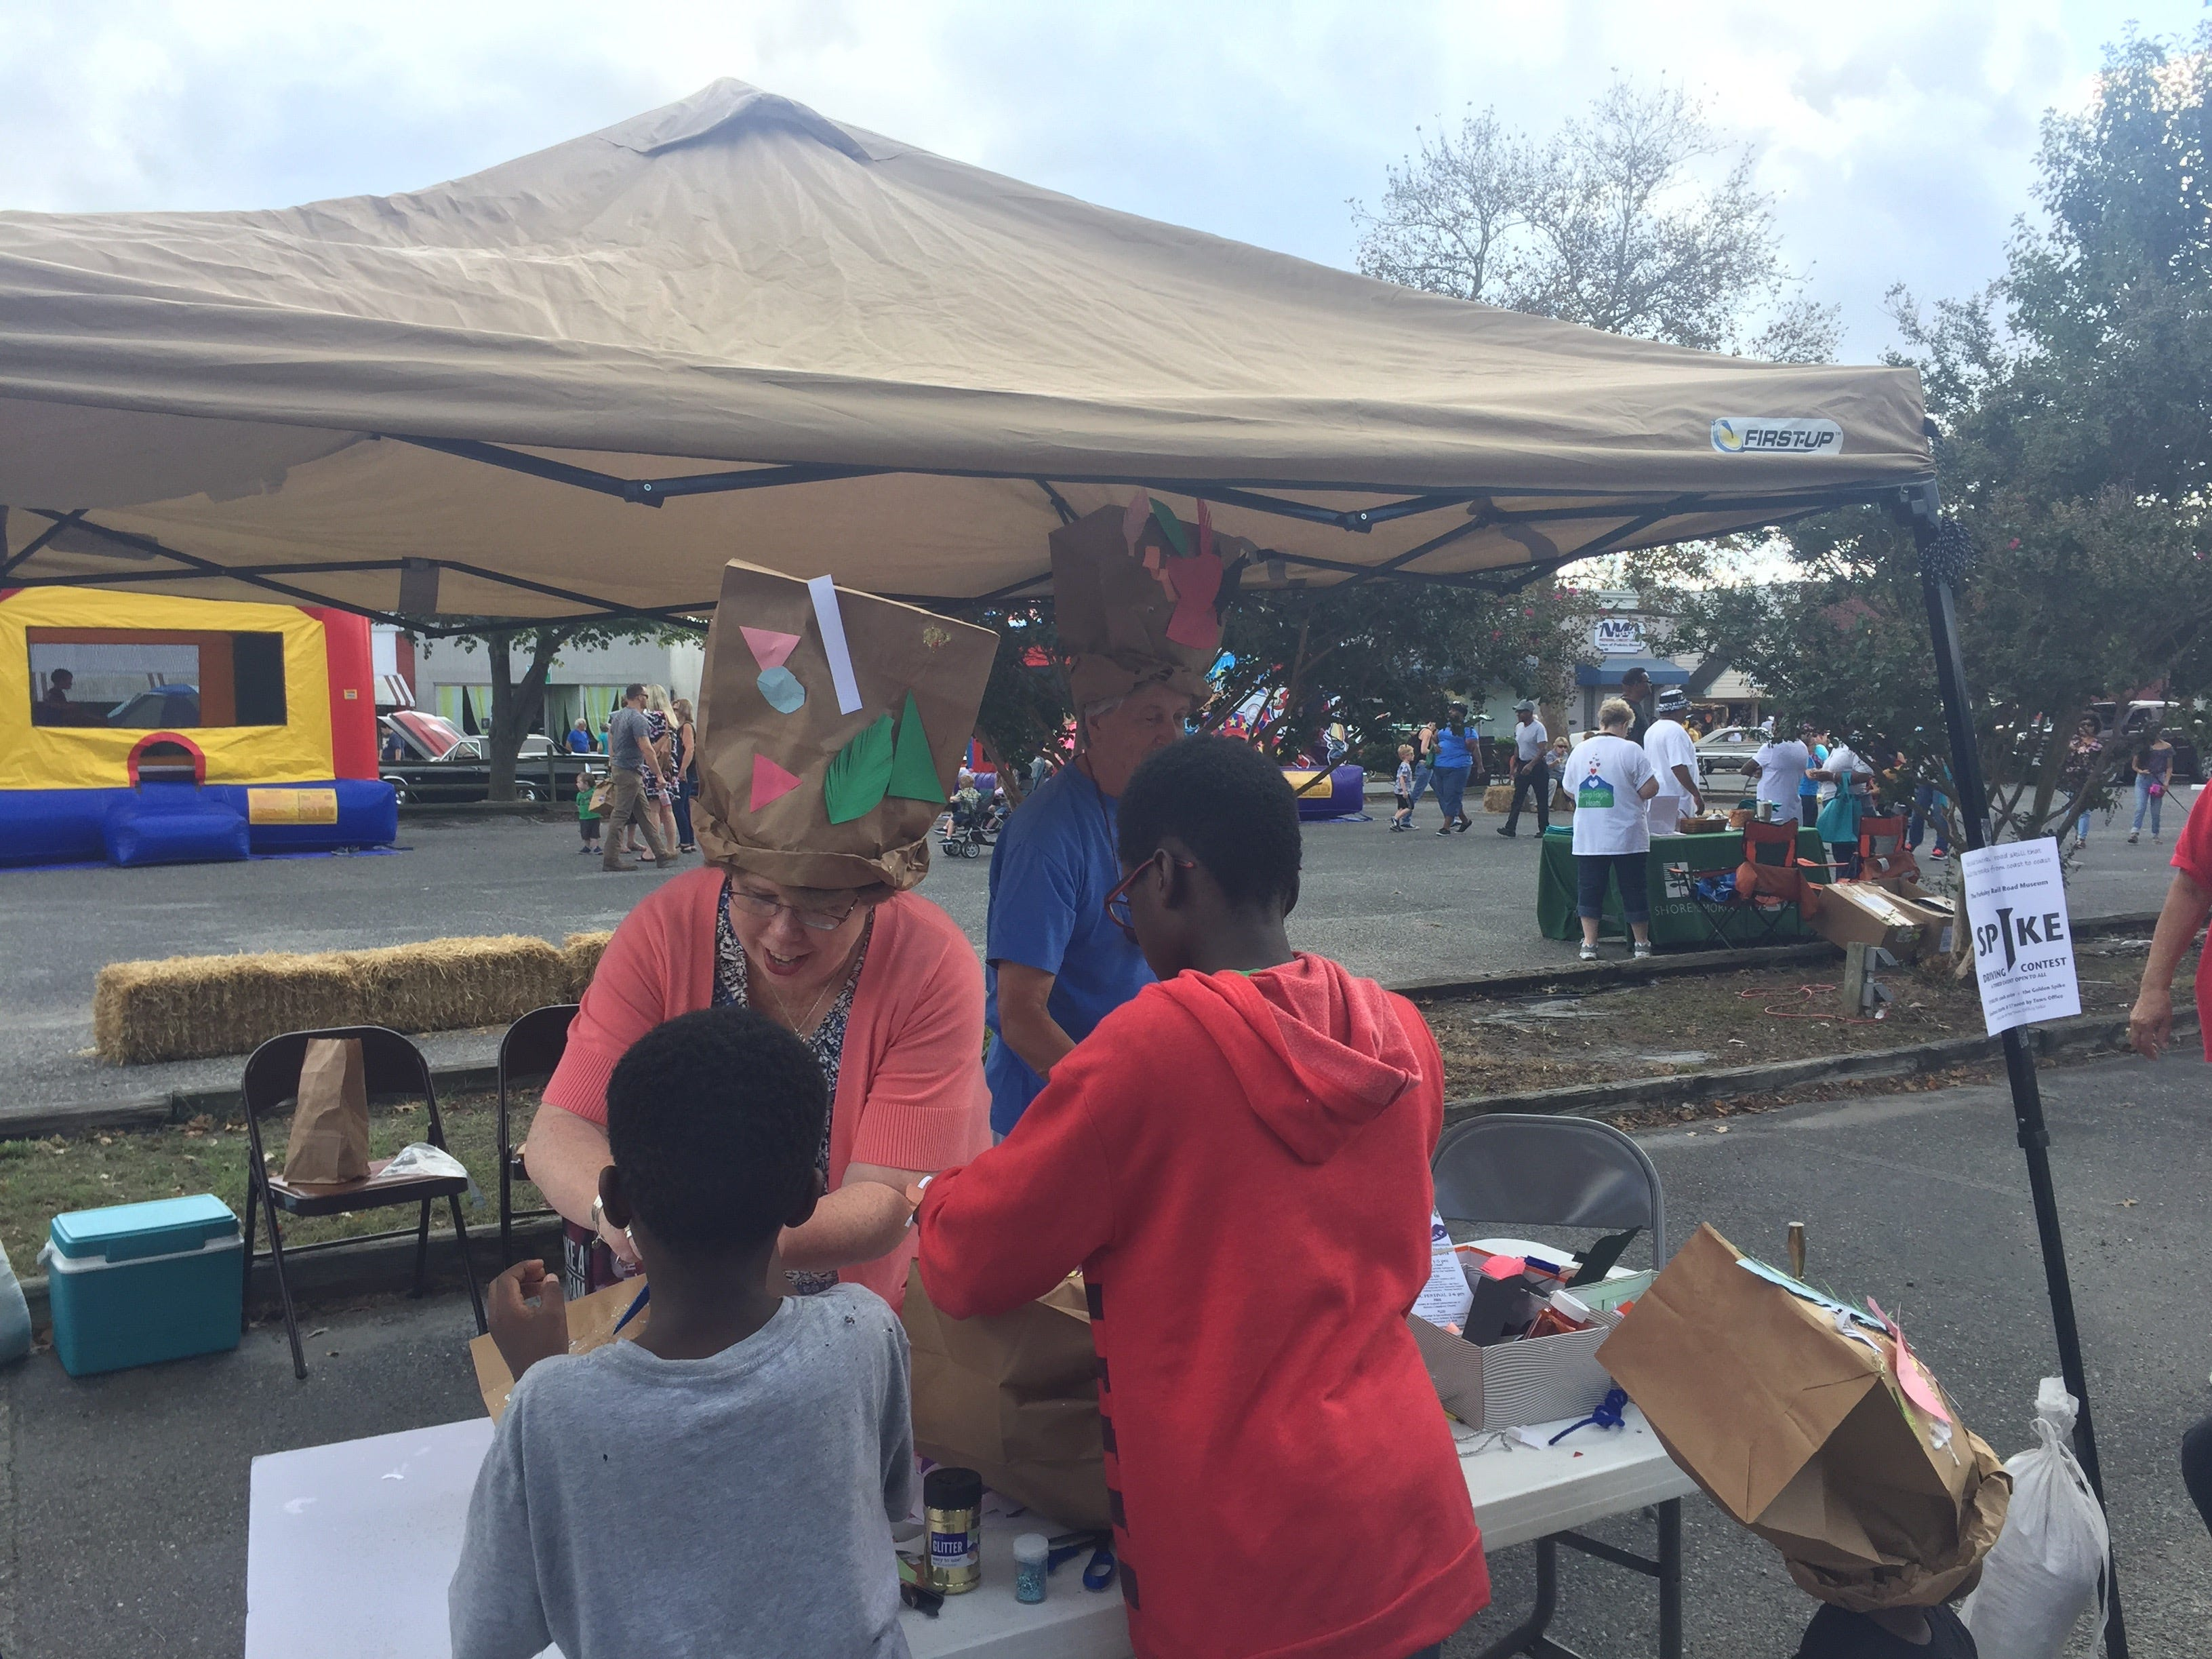 Onancock had a booth where children  could decorate paper hats at the Golden Spike Railroad Festival in Parksley, Virginia on Saturday, Oct. 6, 2018. The festival was a revival of Parksley Fall Festivals held for many years in the past.